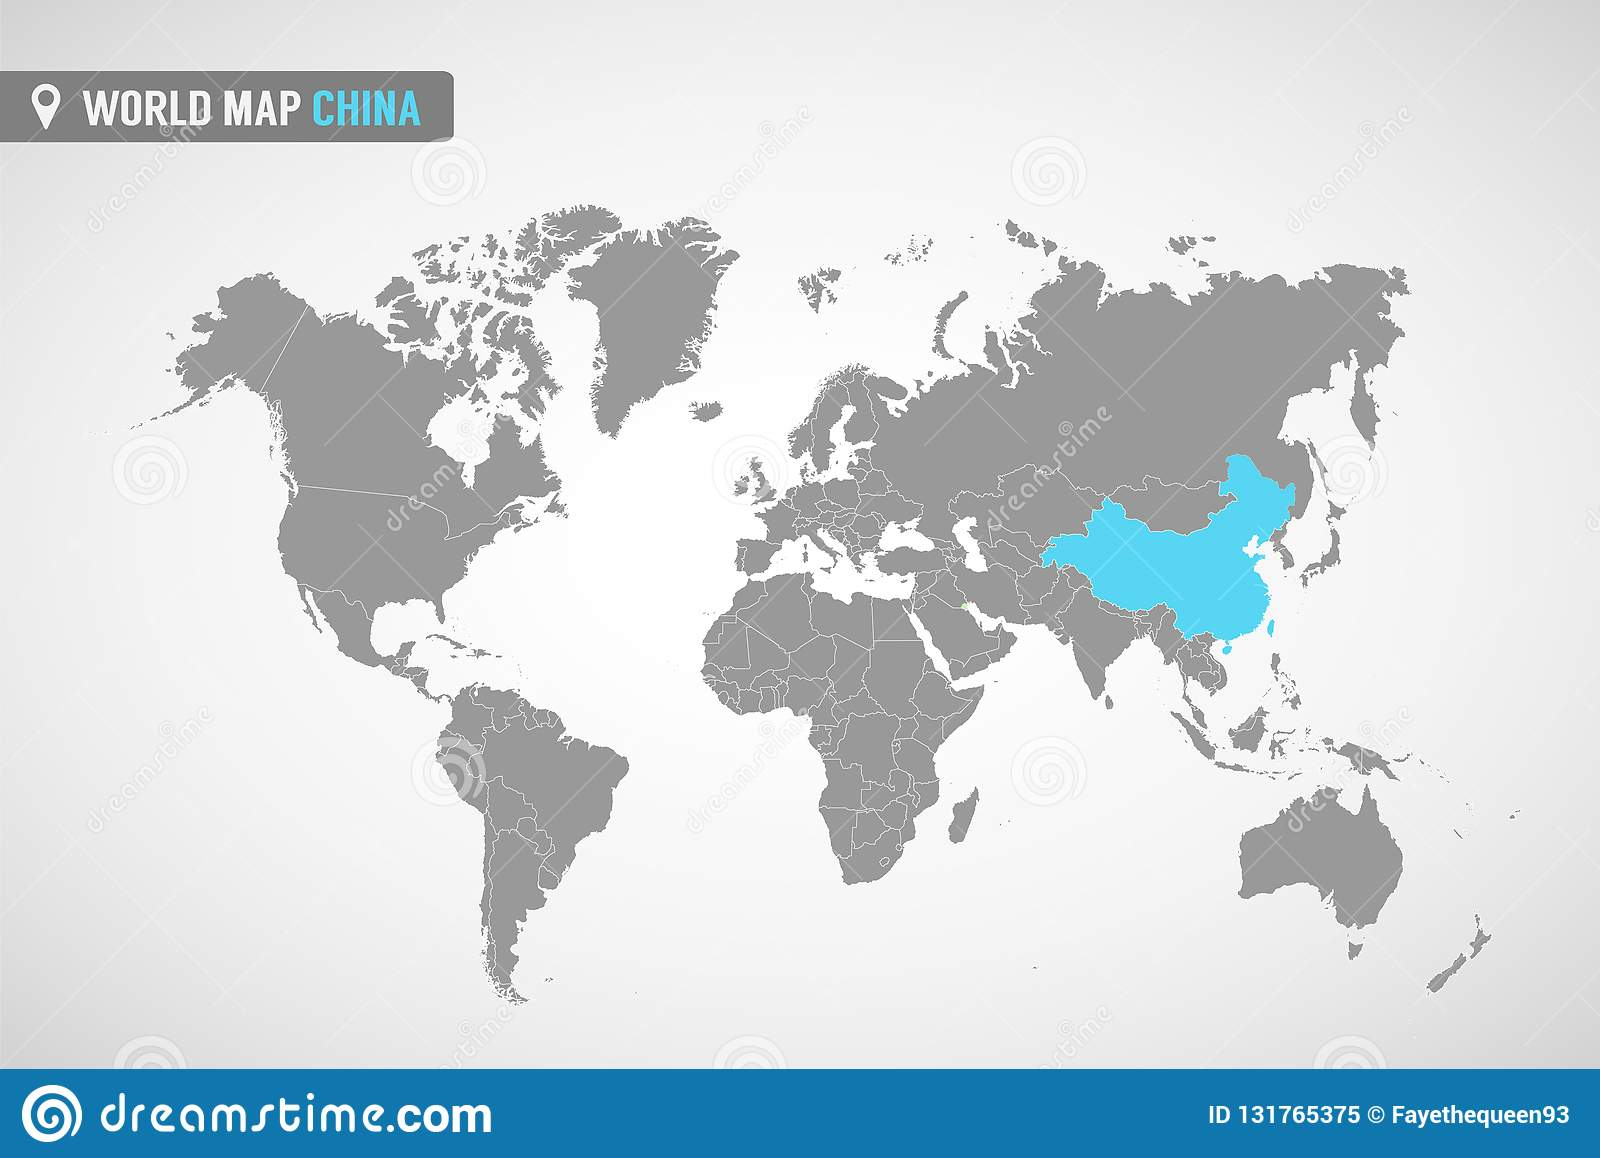 China On Map Of Asia.World Map With The Identication Of China Map Of China Political